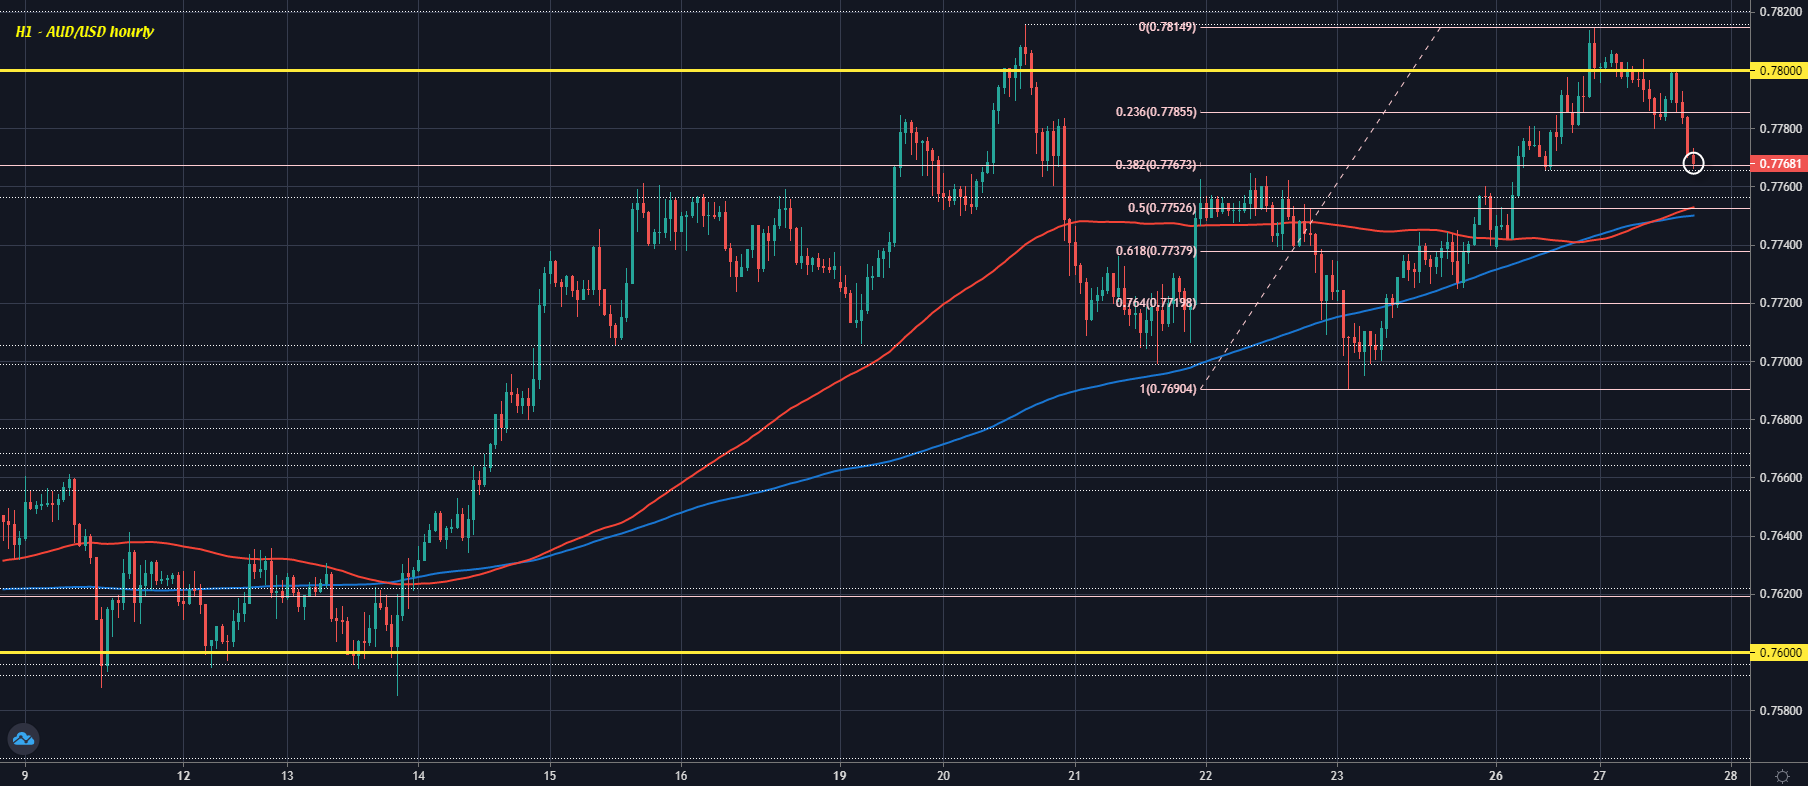 AUD/USD eases to session lows, extends pullback as dollar holds firmer on the day